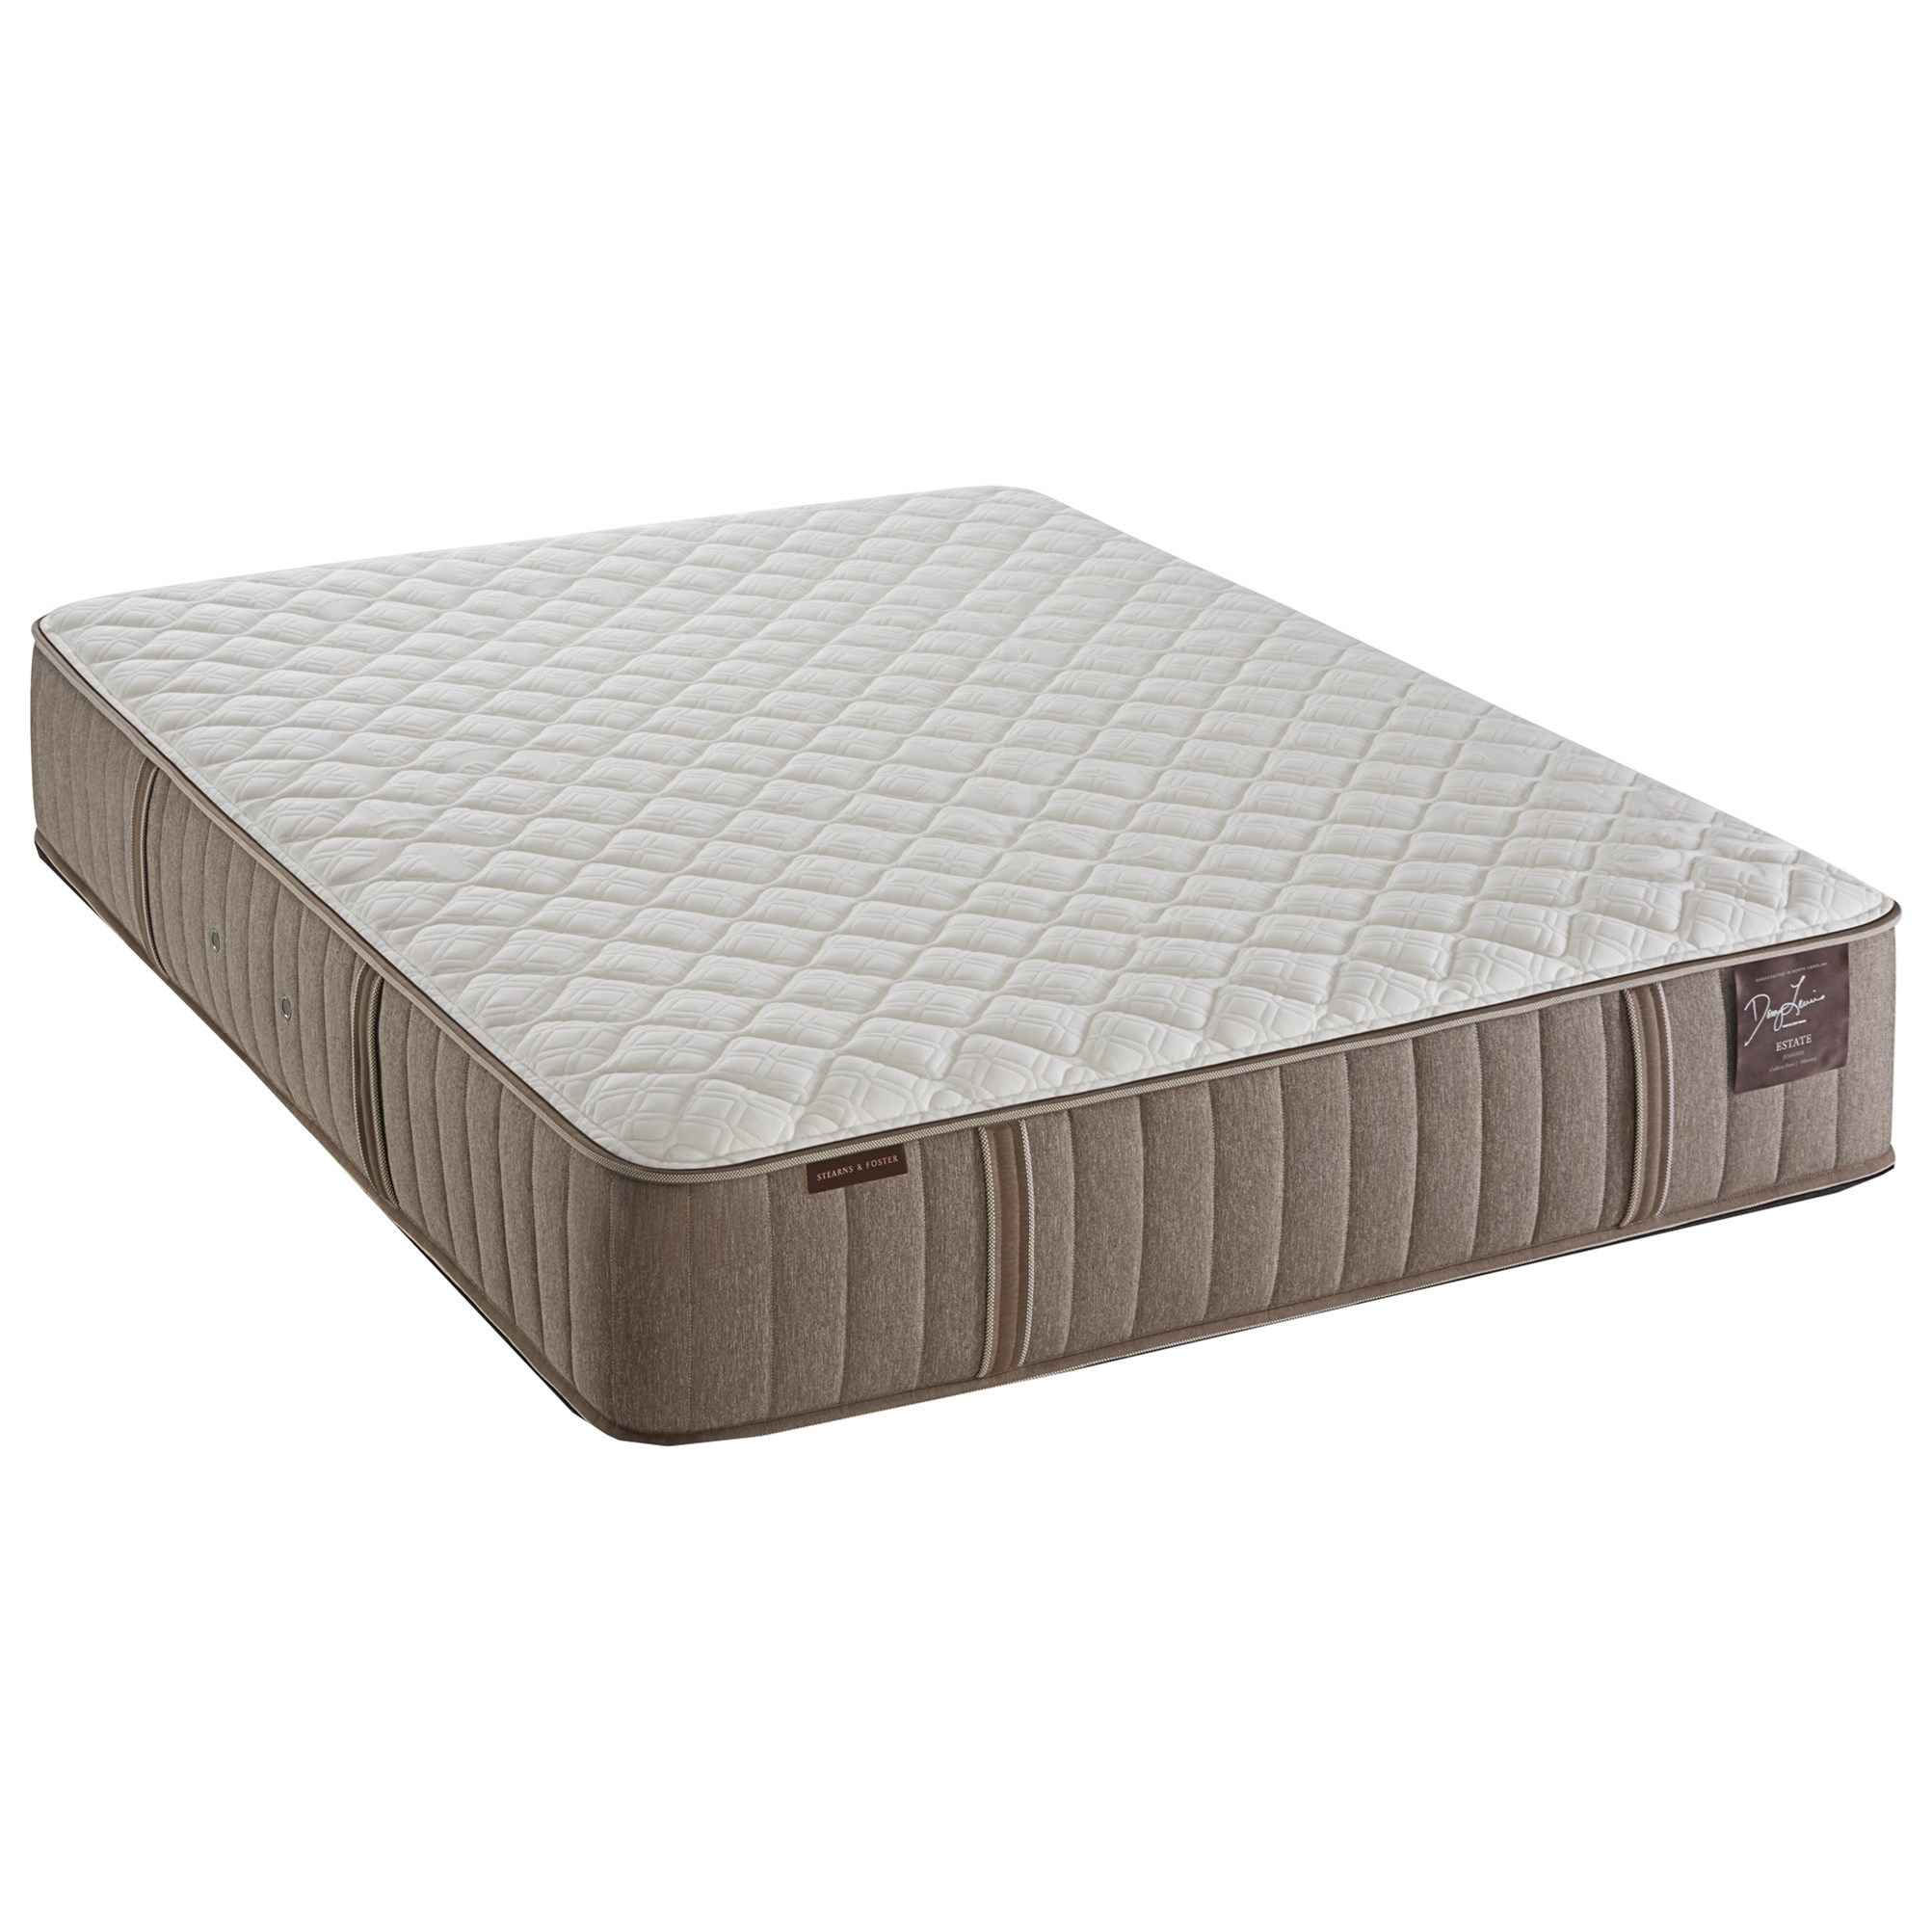 Stearns & Foster Scarborough Queen Ultra Firm Mattress - Item Number: UFirm-Q